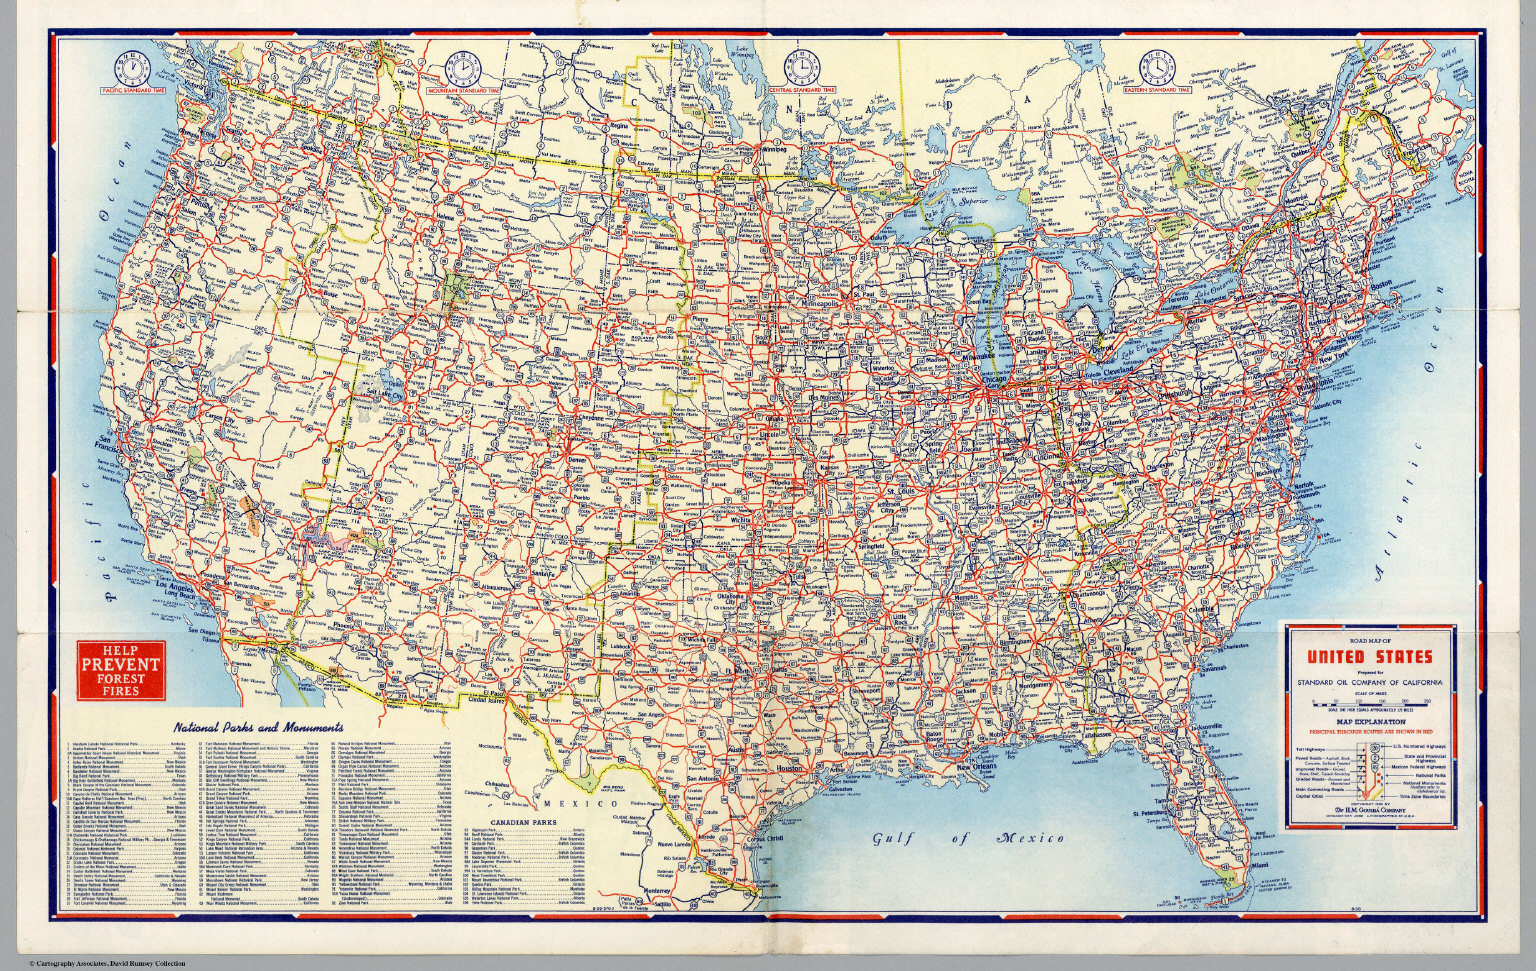 Us road map clipart black and white Maps Update #21511477: Road Map Us – USA Map (+84 More Maps ... black and white